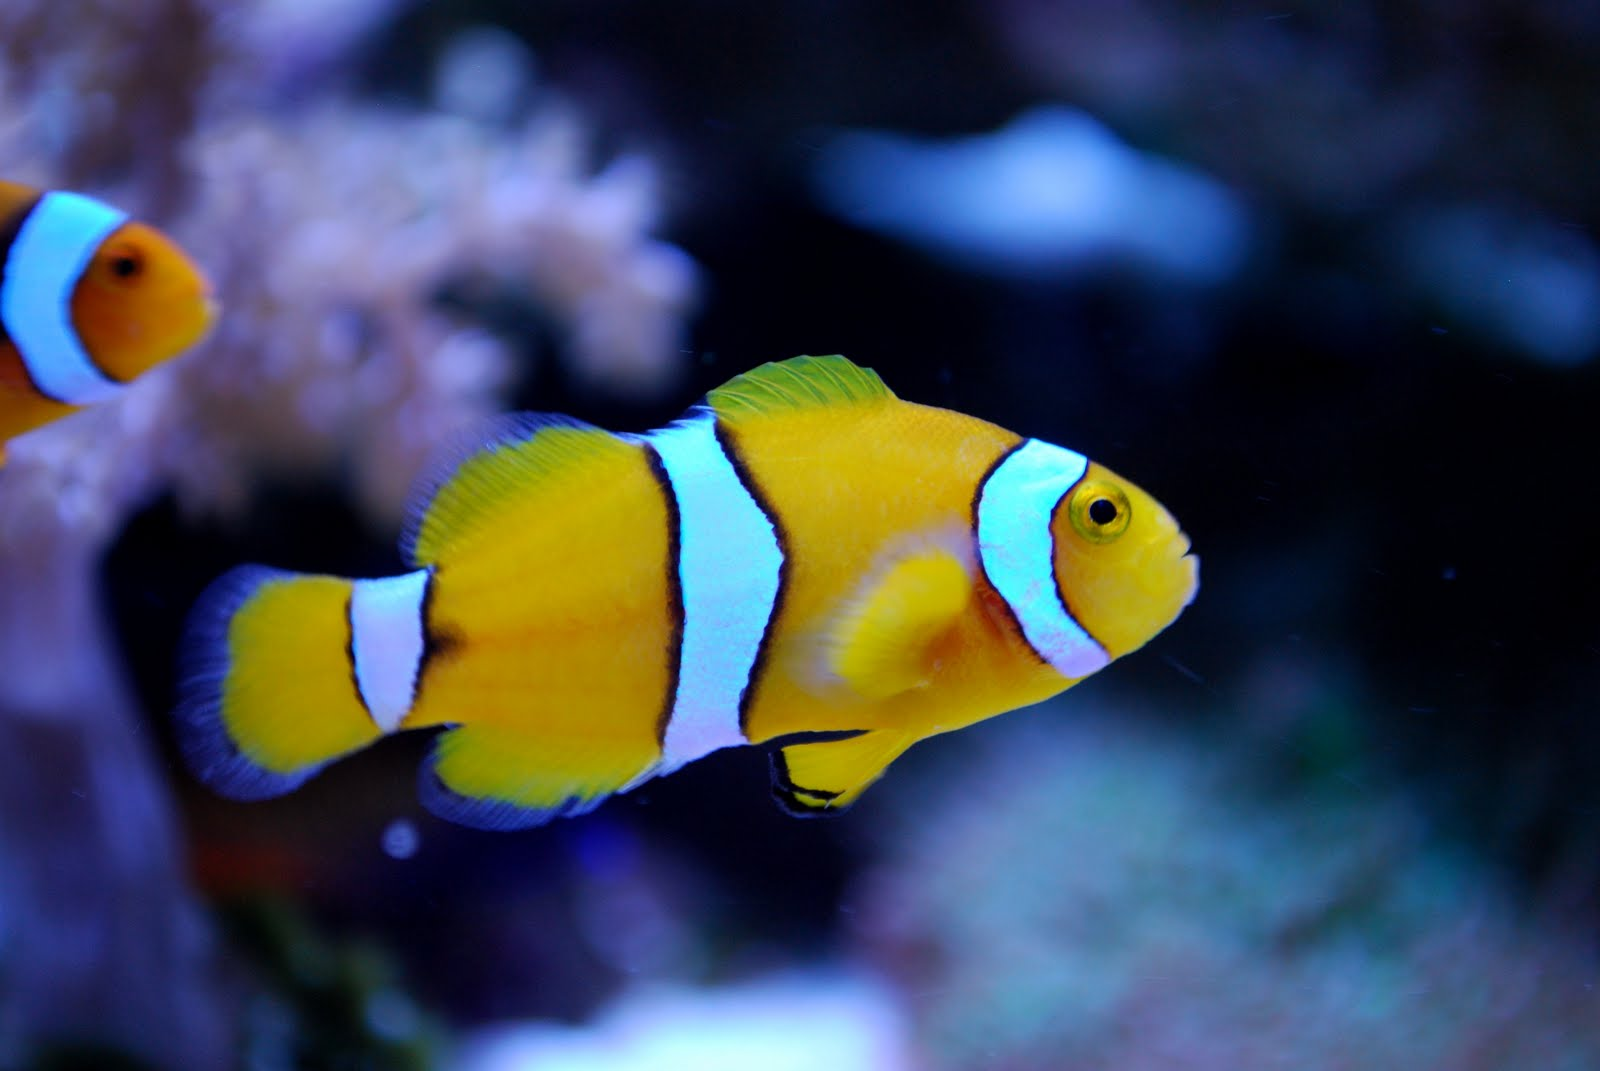 The best things in life are free november 2009 for Clown fish facts